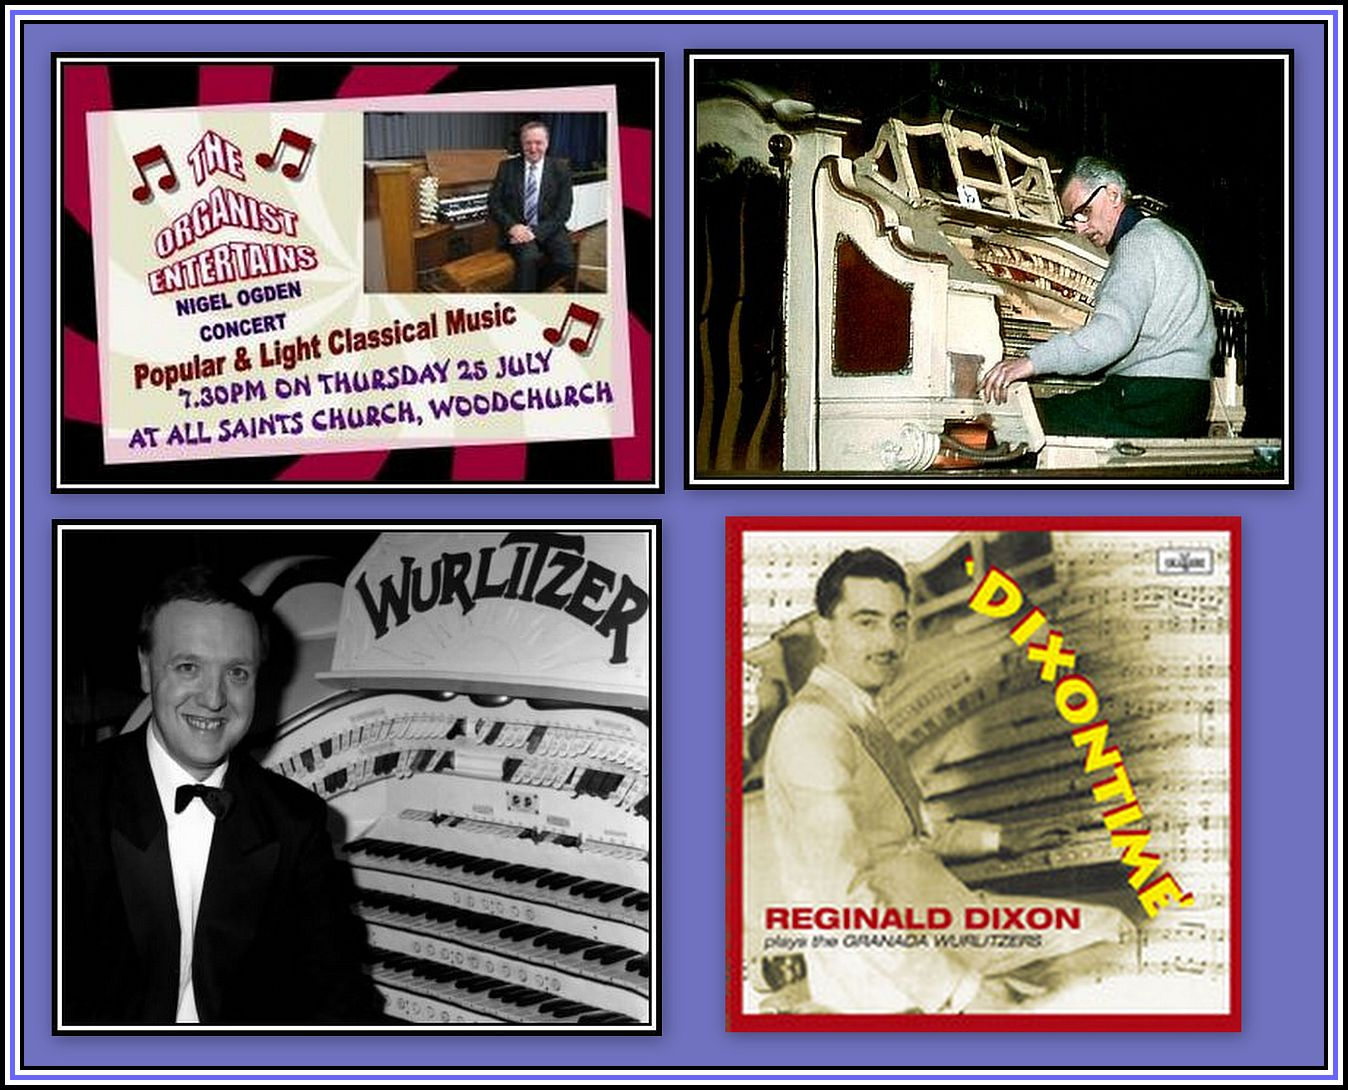 Wurlitzer Collage with the giants